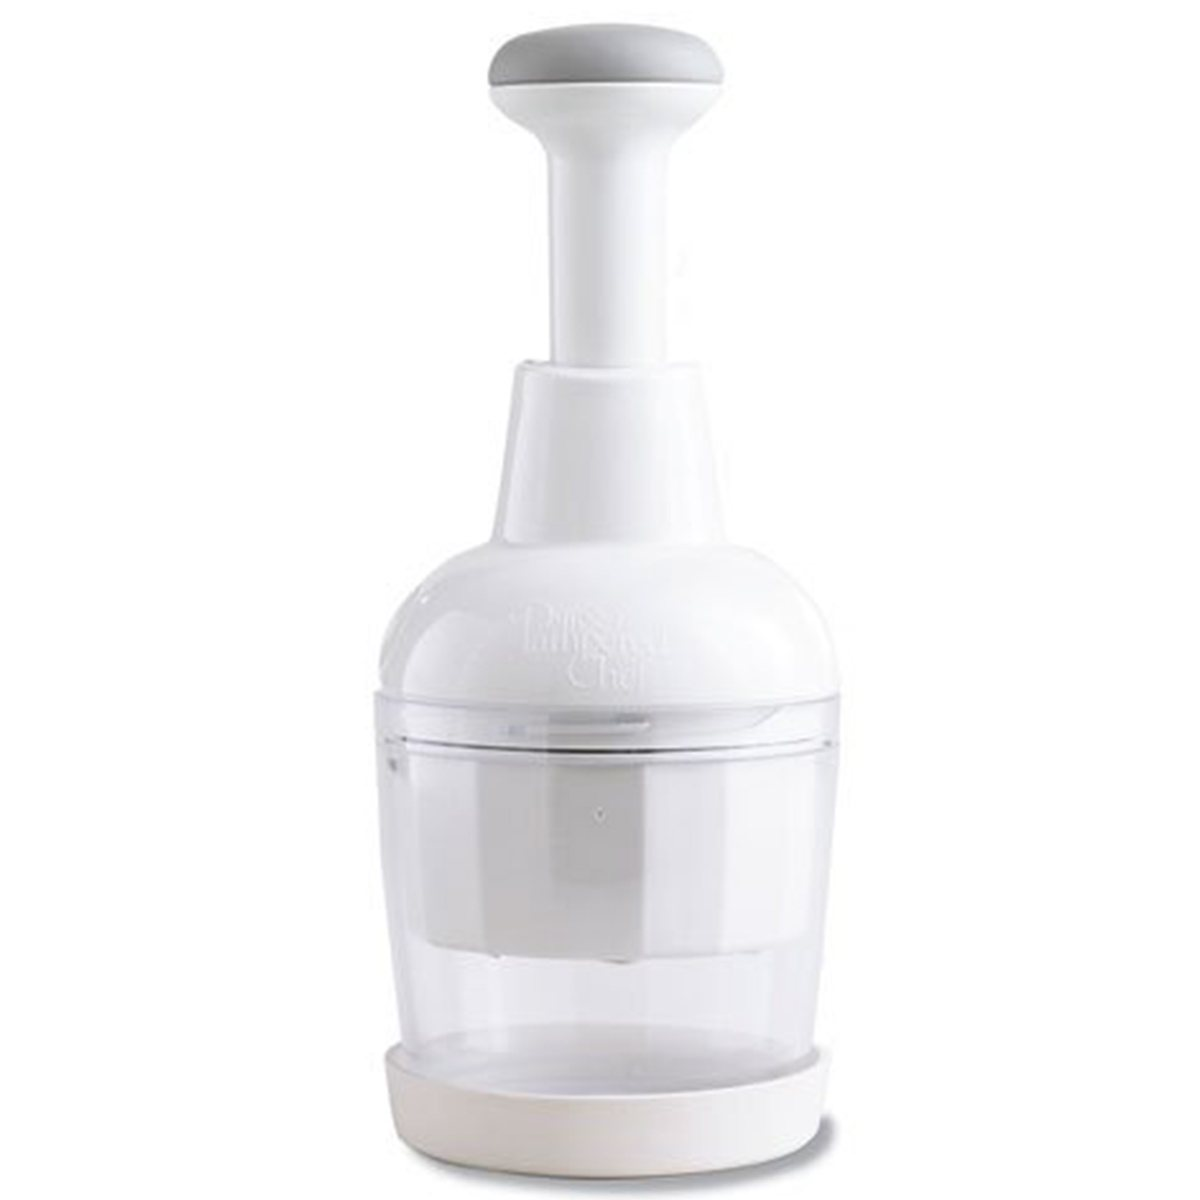 The Pampered Chef Cutting Edge Manual Food Chopper